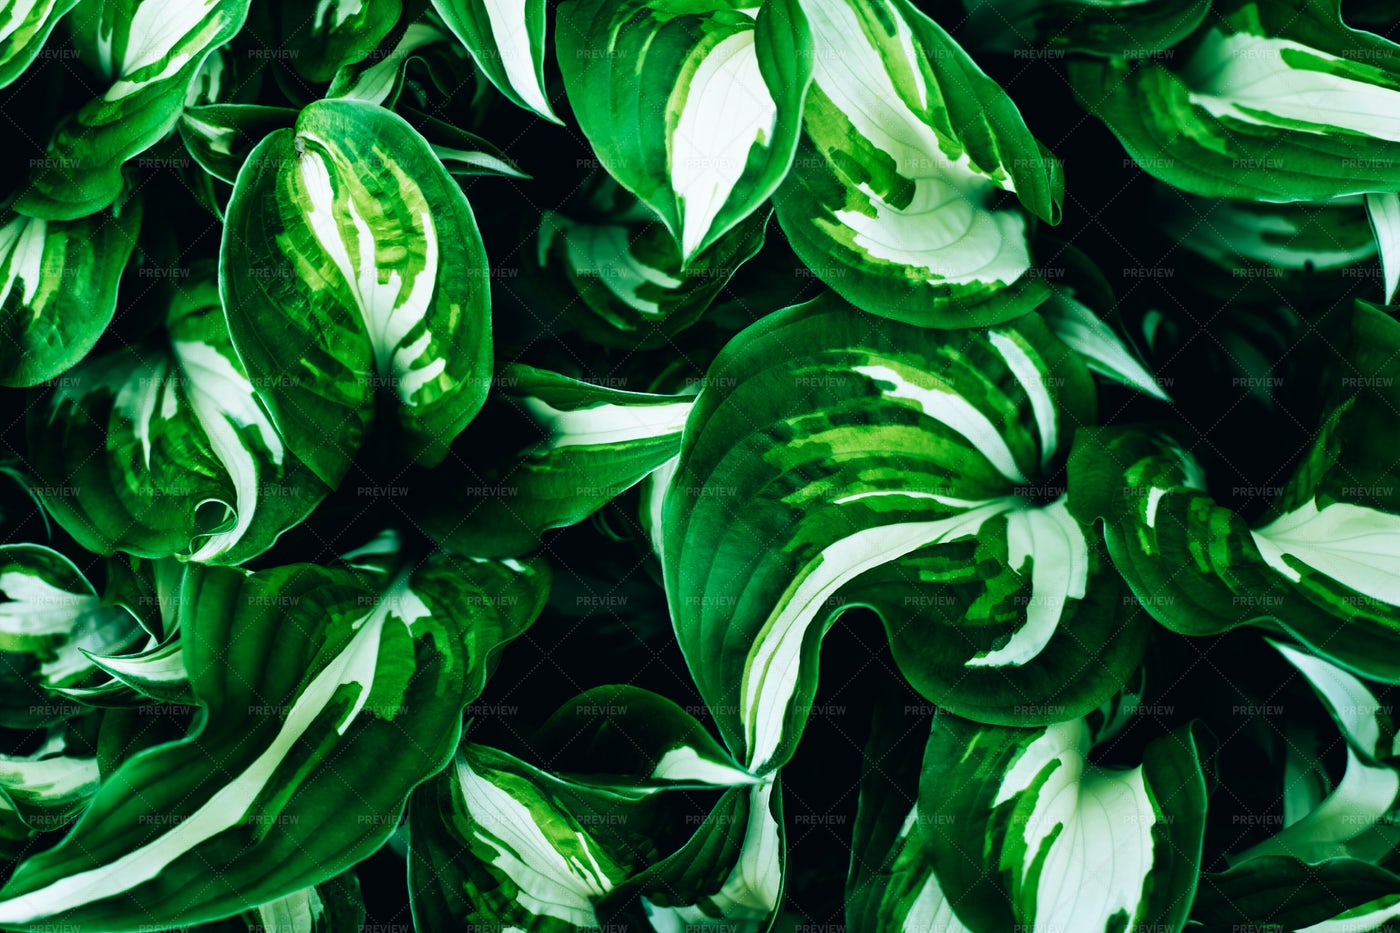 Green Leaves: Stock Photos